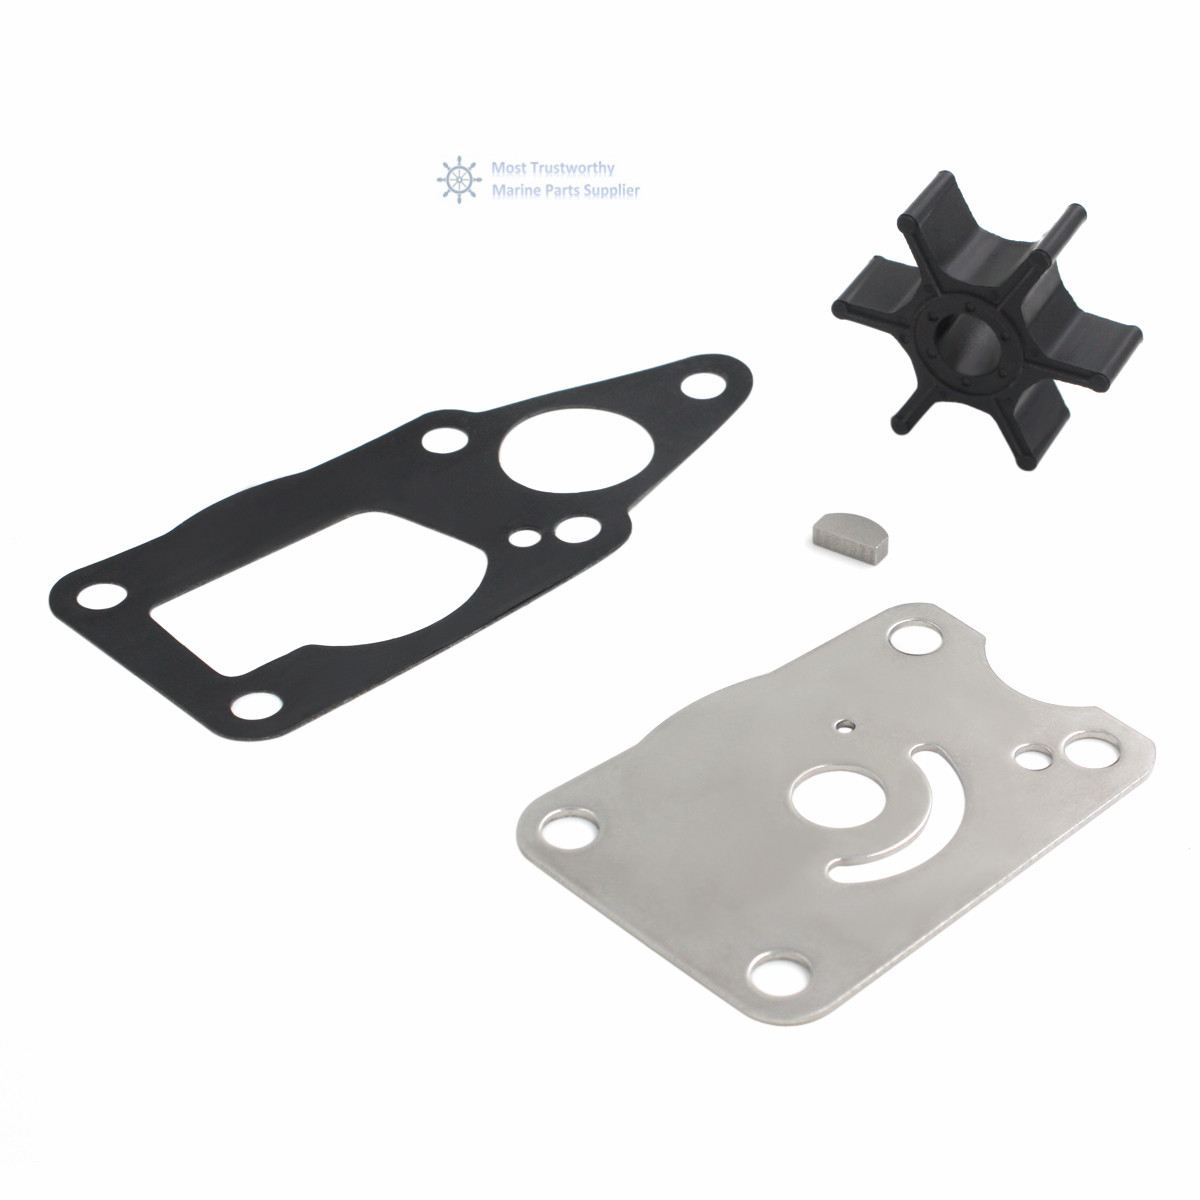 New Water Pump Impeller Service Kit For Suzuki DF4 DF6 17400-98661 18-3266